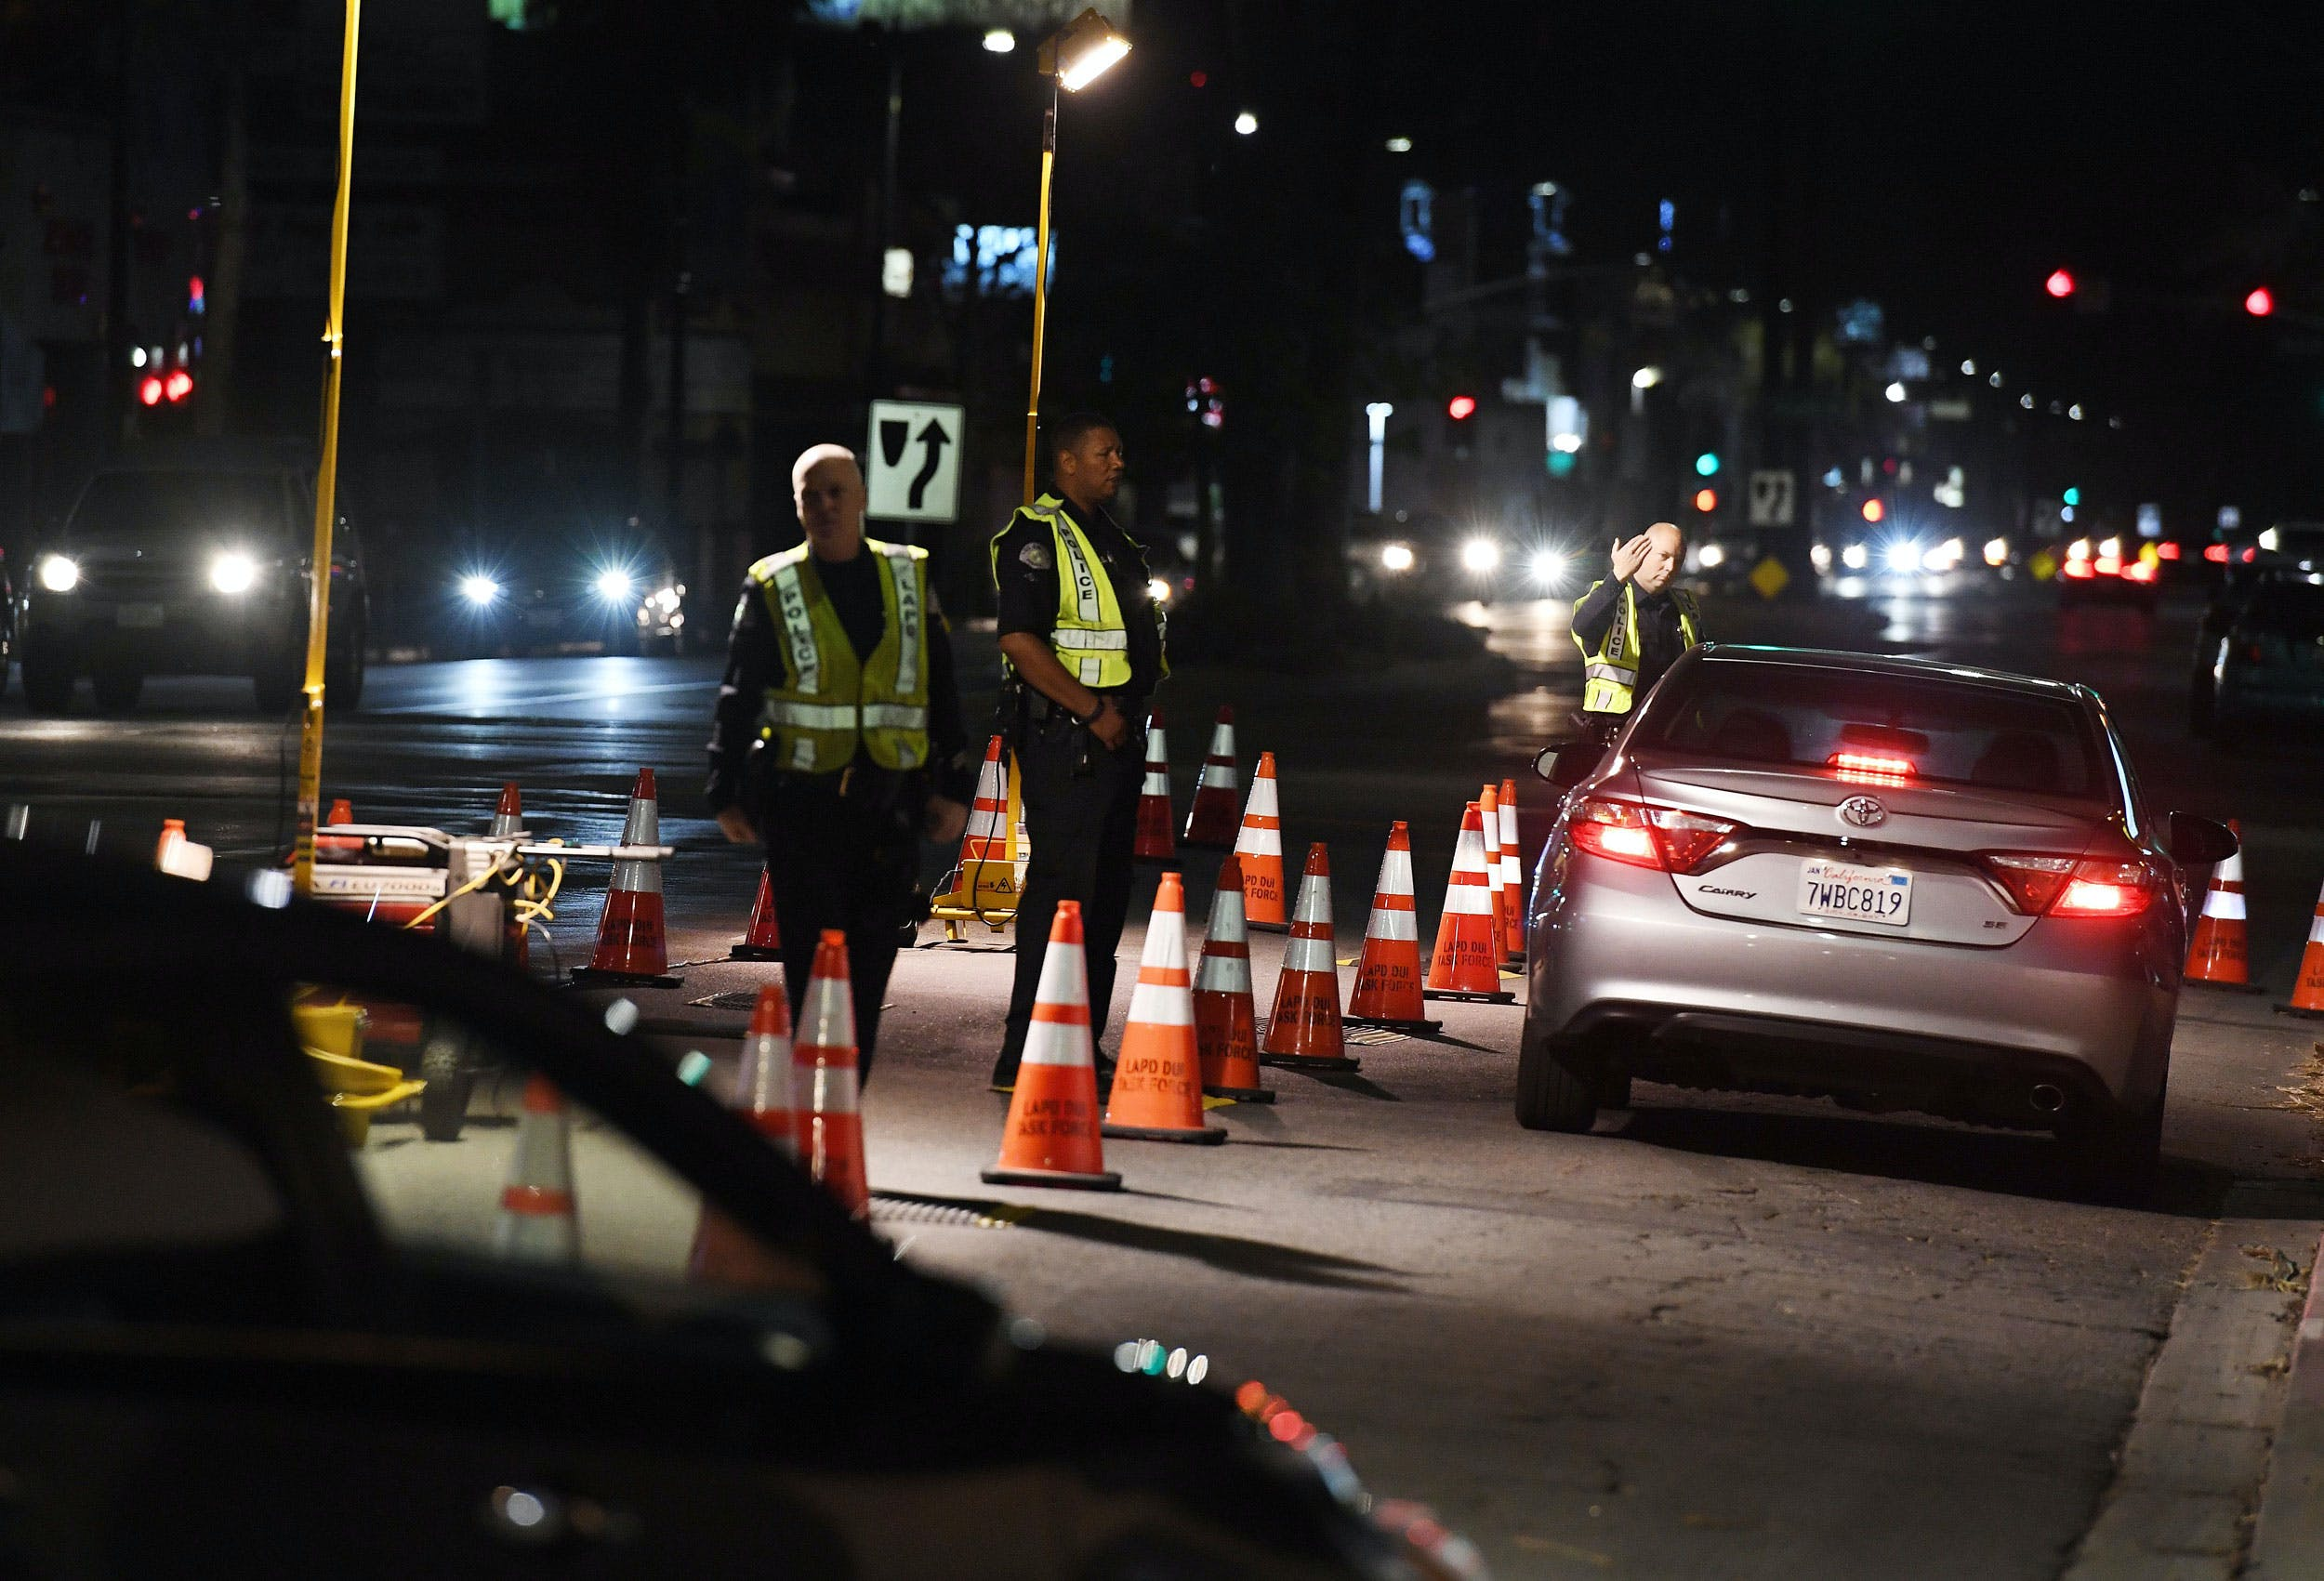 Canada has new impaired driving laws but its cops may not be ready to enforce them Caribbean Nations Are Seriously Thinking About Cannabis Decriminalization